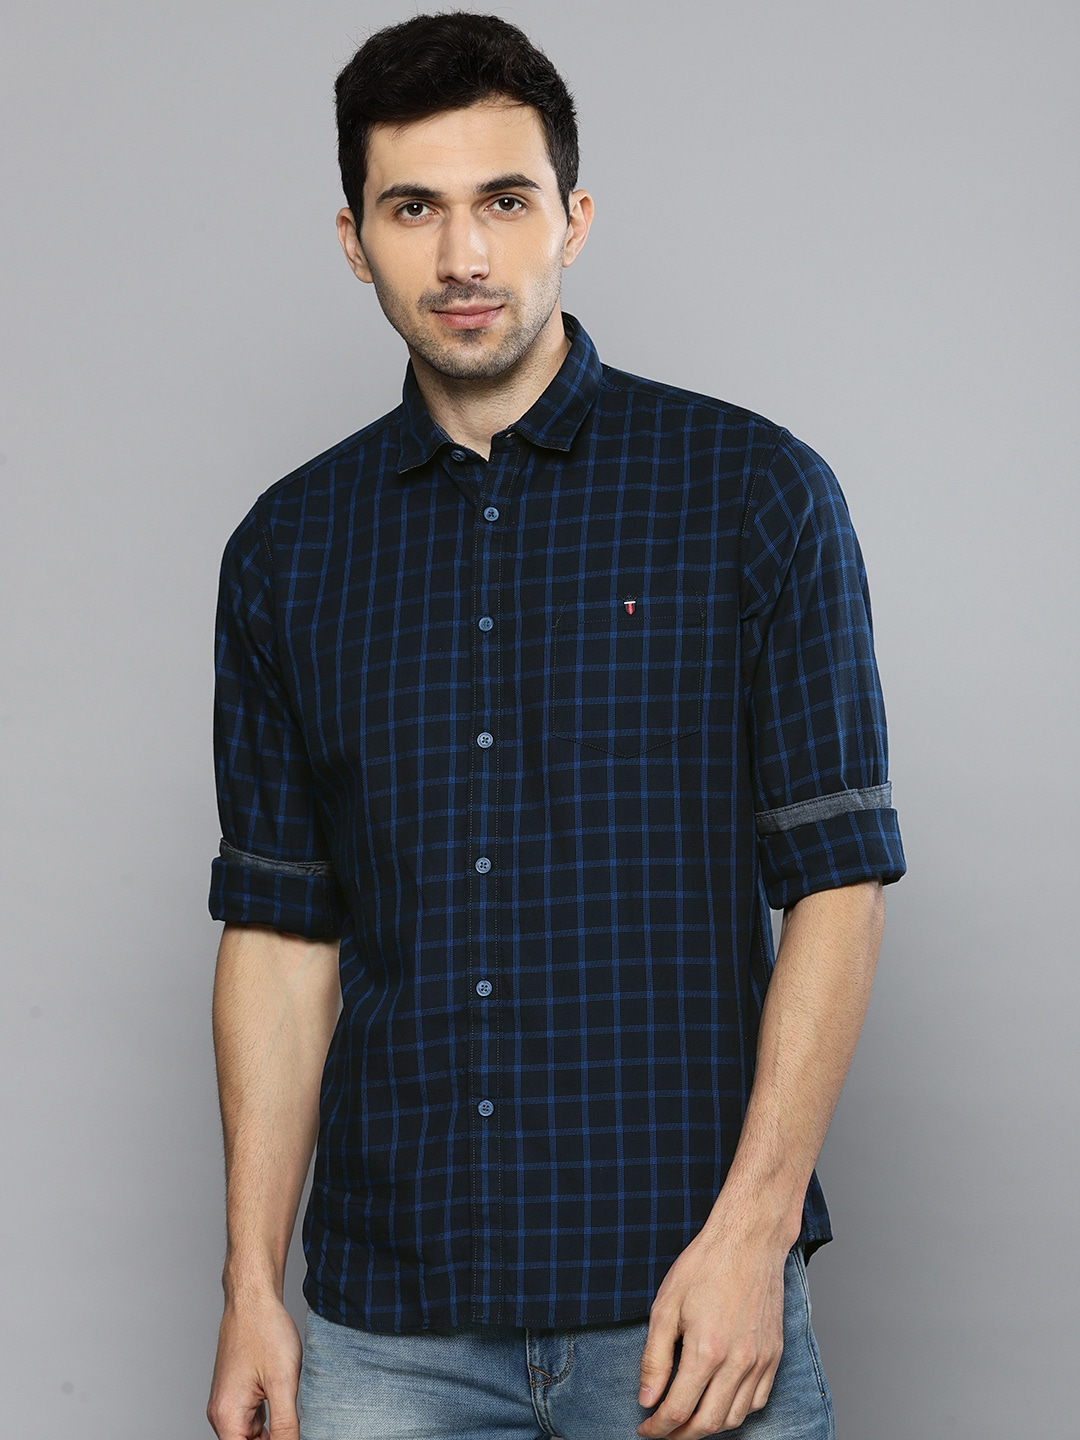 c944f2e4262 Shirts for Men - Buy Mens Shirt Online in India